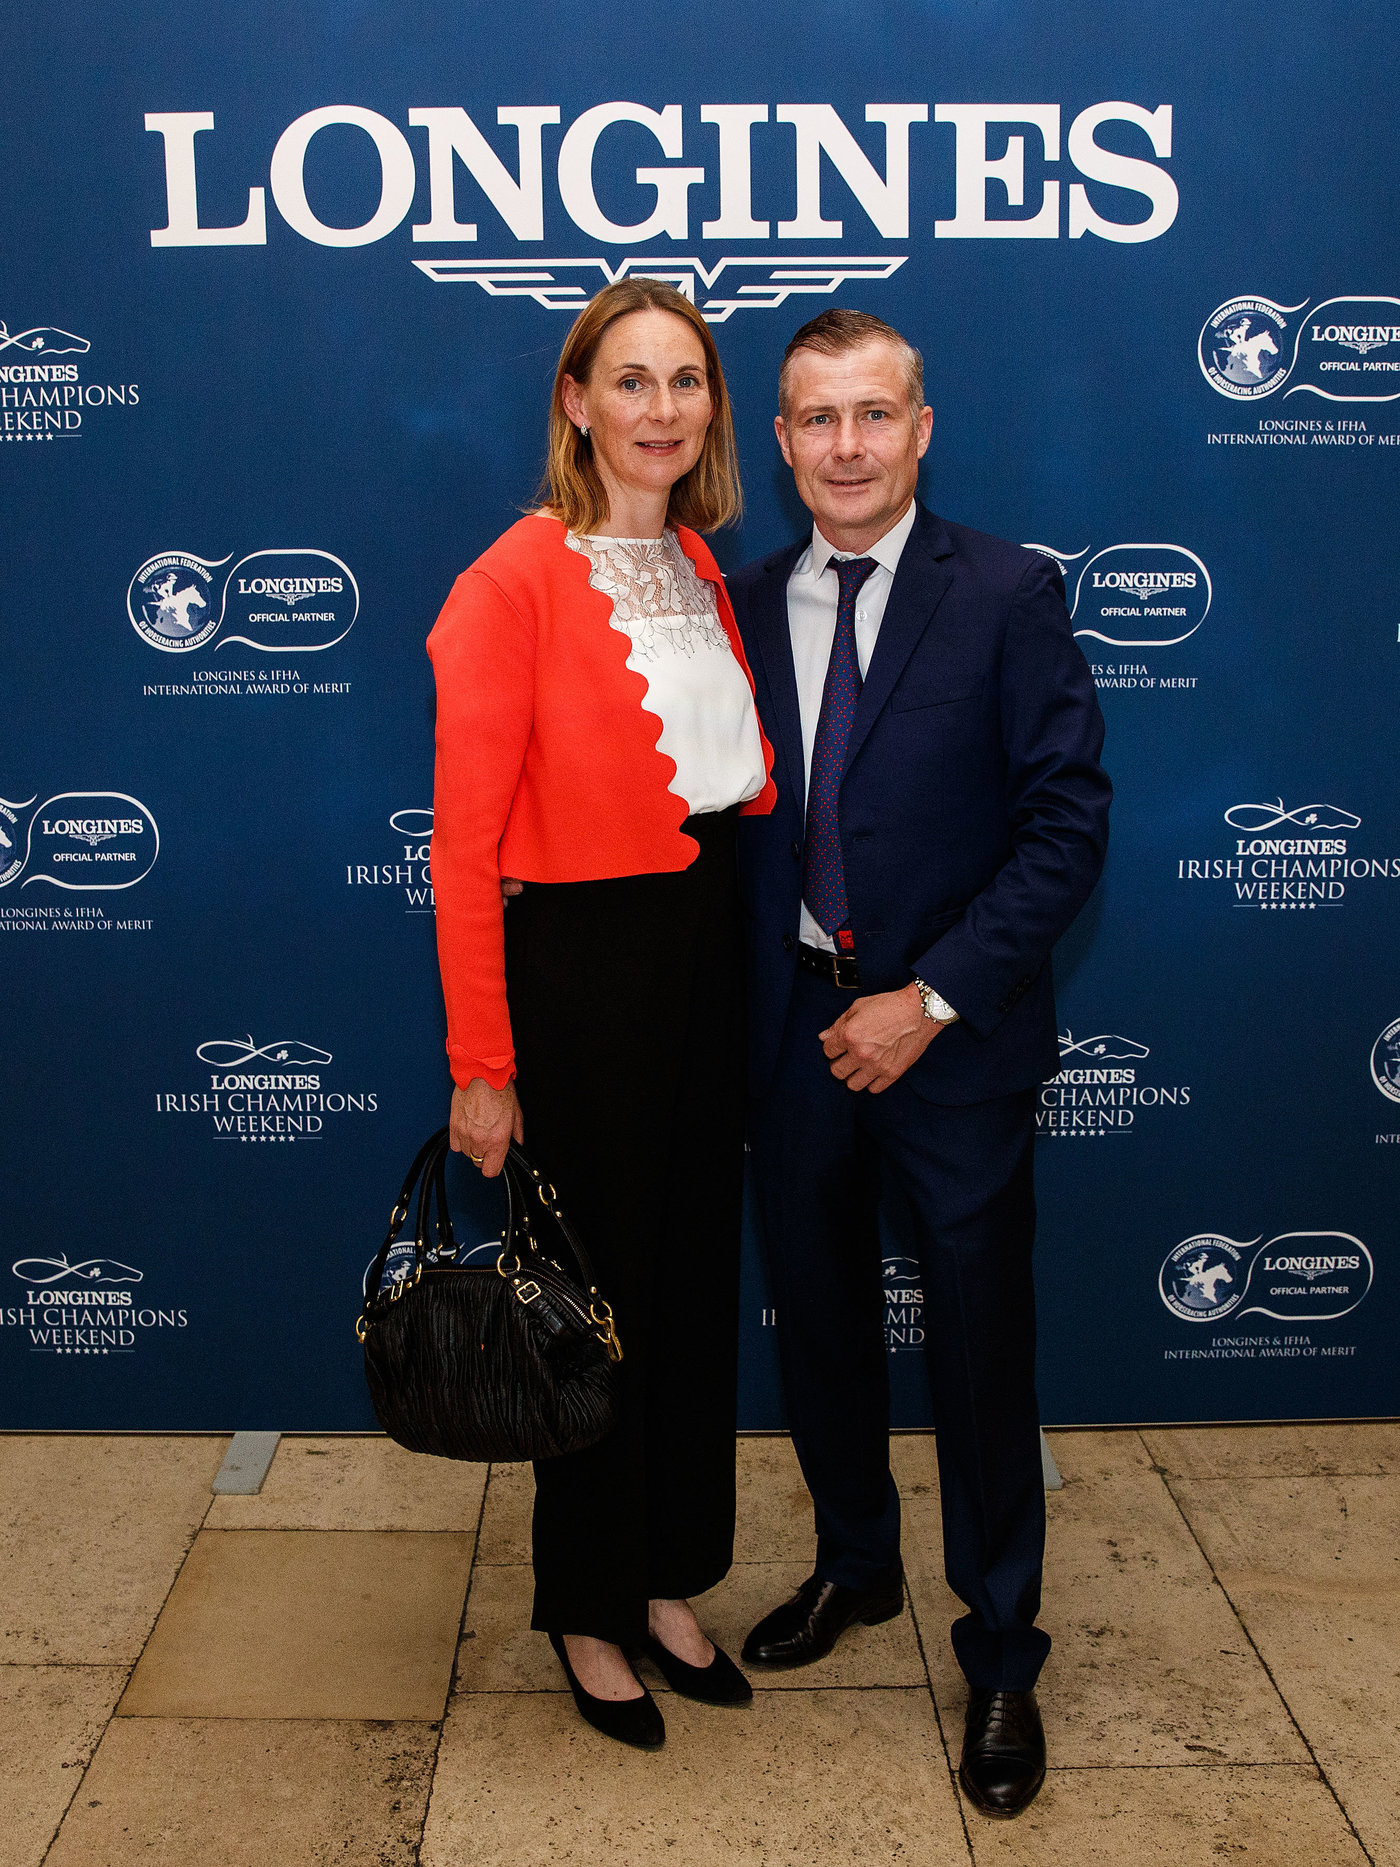 Longines Flat Racing Event: Magnier Family, O'Brien Receive  2018 Longines and IFHA International Award of Merit 5